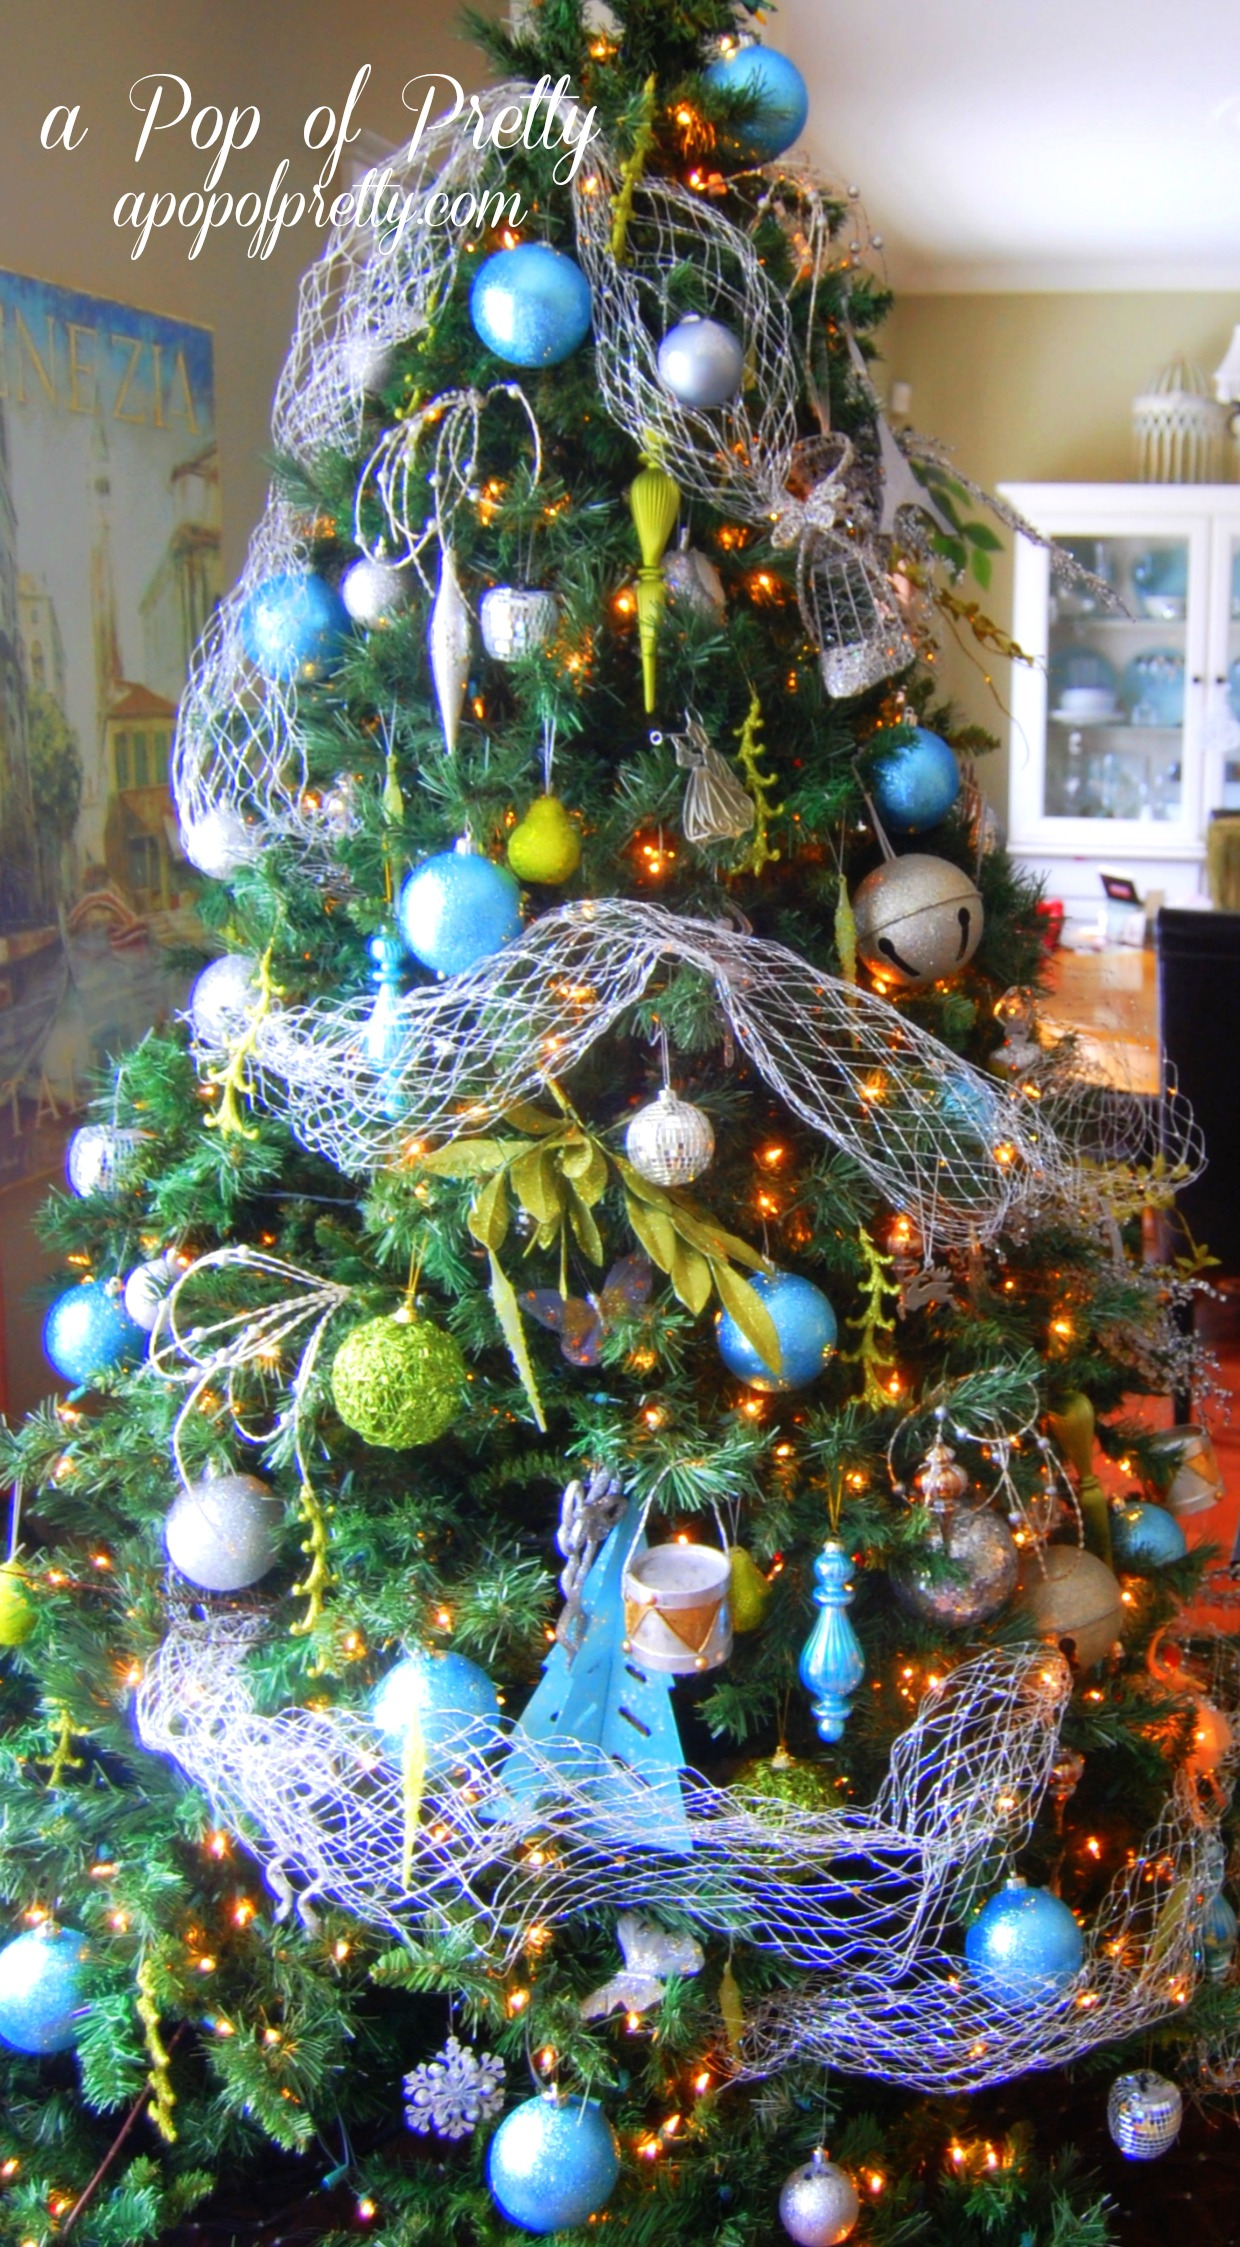 Turquoise Christmas Tree Decorations - A Pop of Pretty ...